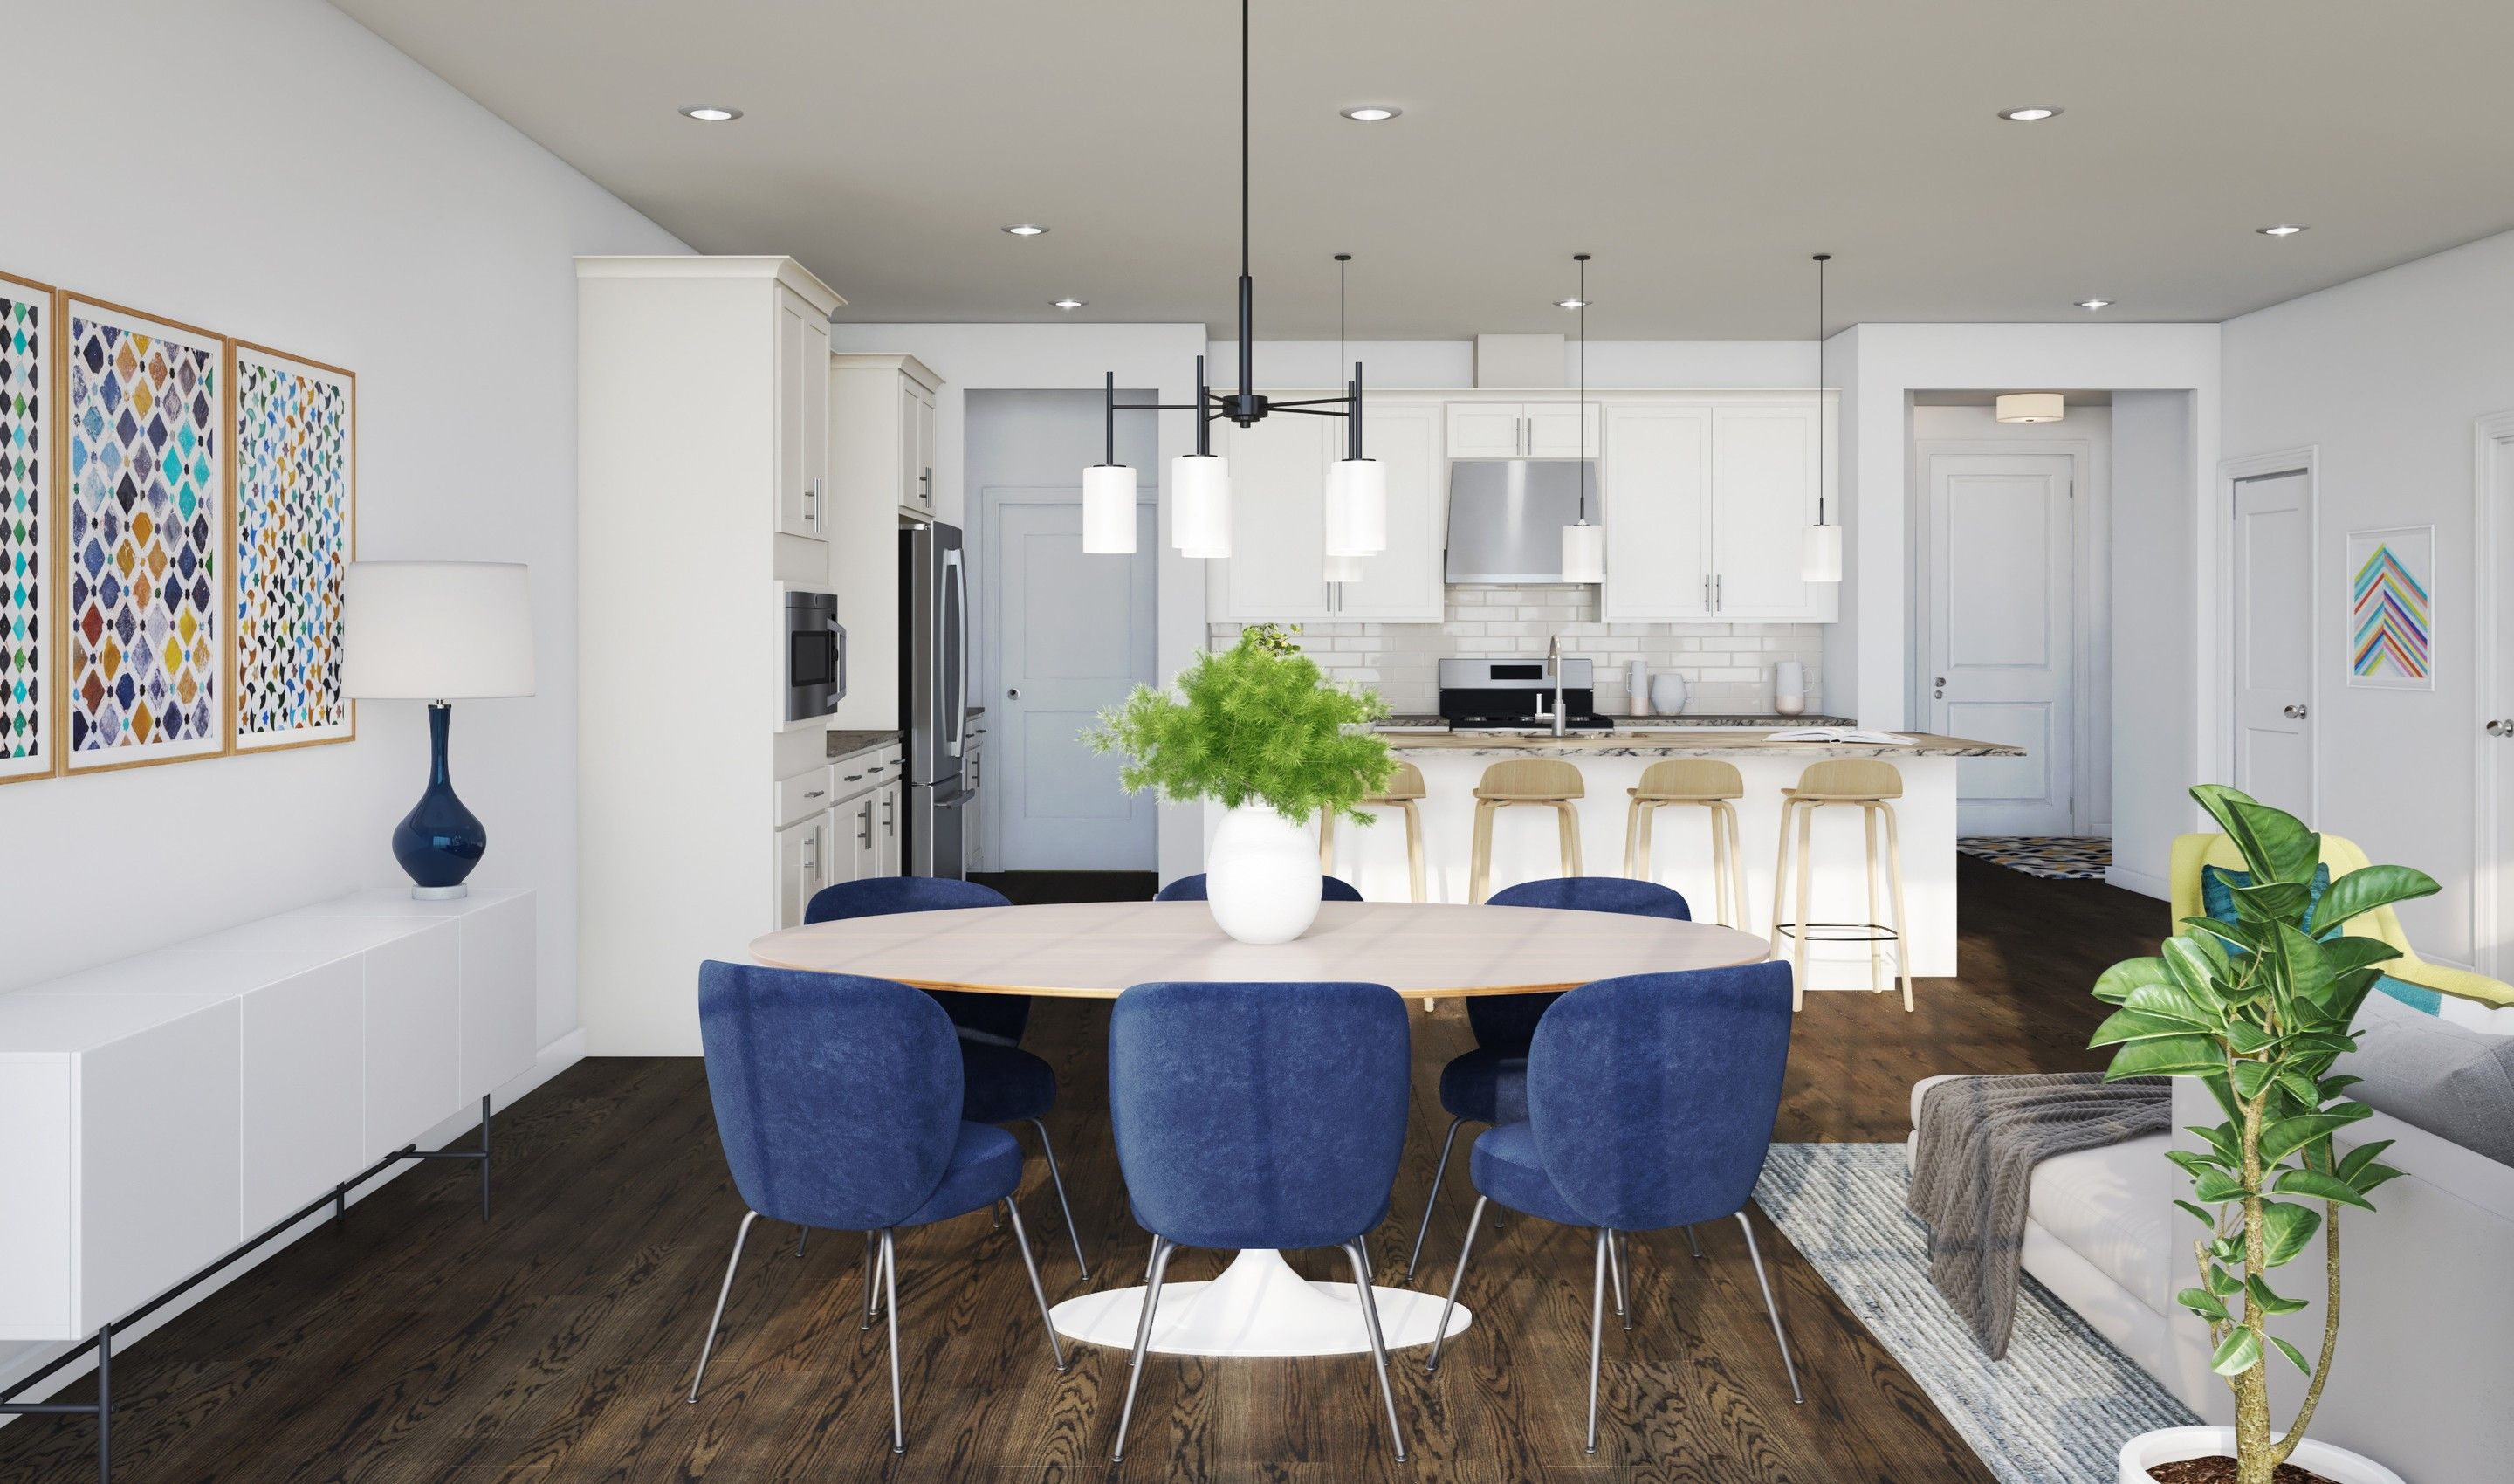 Kitchen featured in the Davidson By K. Hovnanian® Homes in Middlesex County, NJ